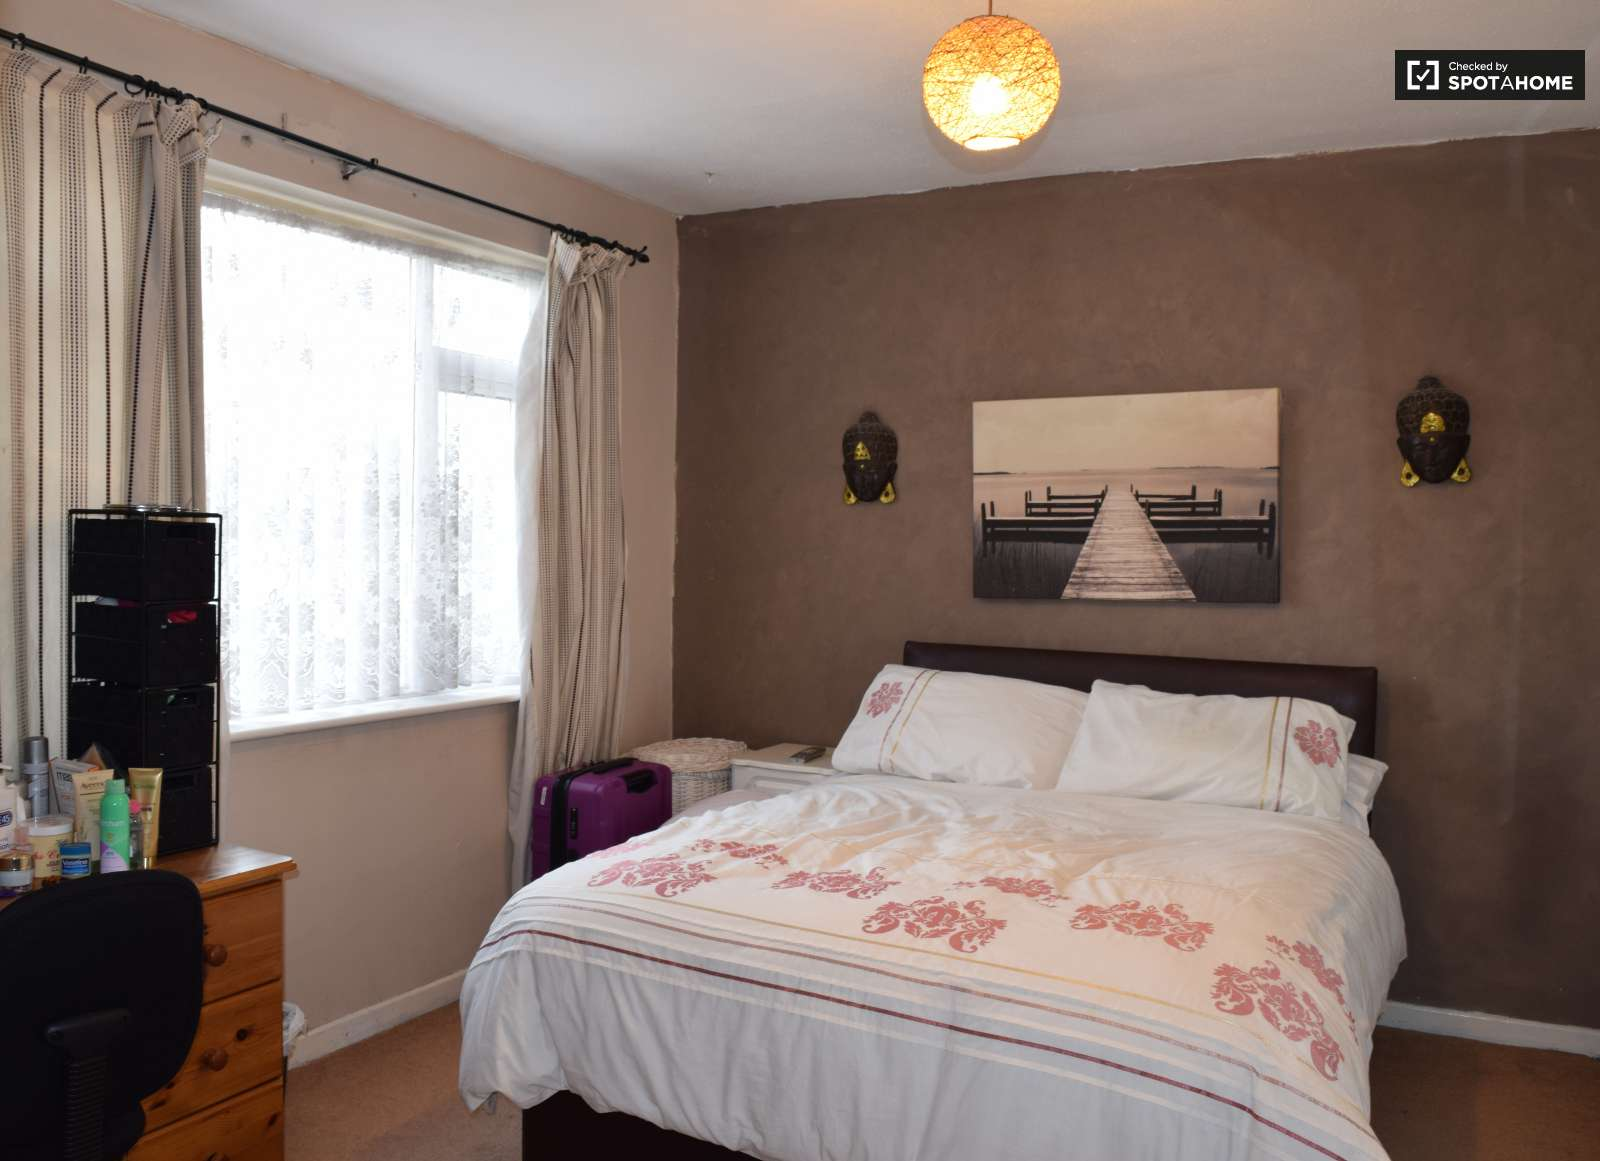 Large Room In 4 Bedroom Apartment In Templeogue Dublin Ref 105453 Spotahome